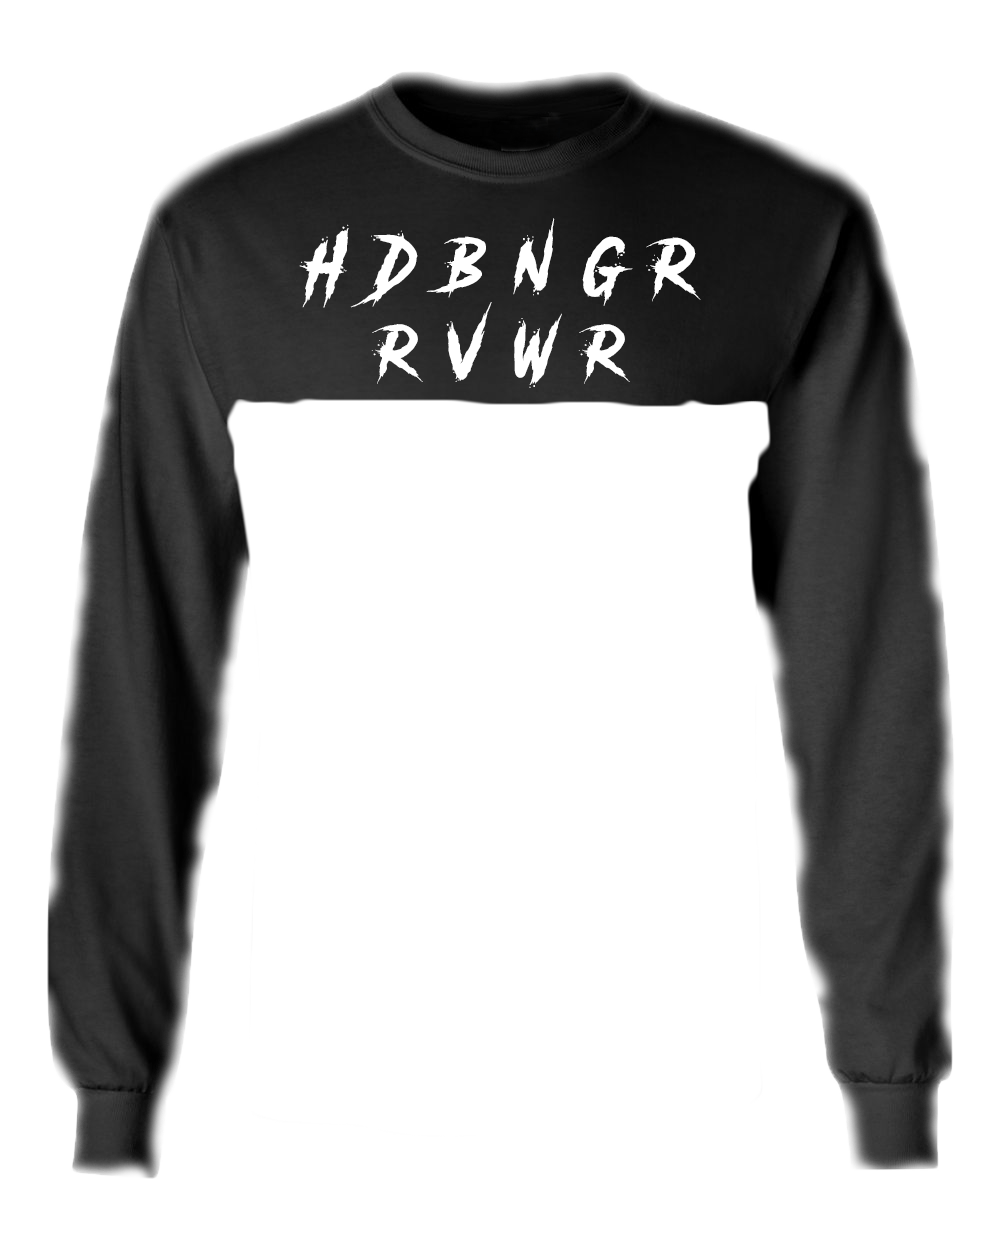 HDBNGR RVWR Long Sleeve Cropped Cut Off Tee